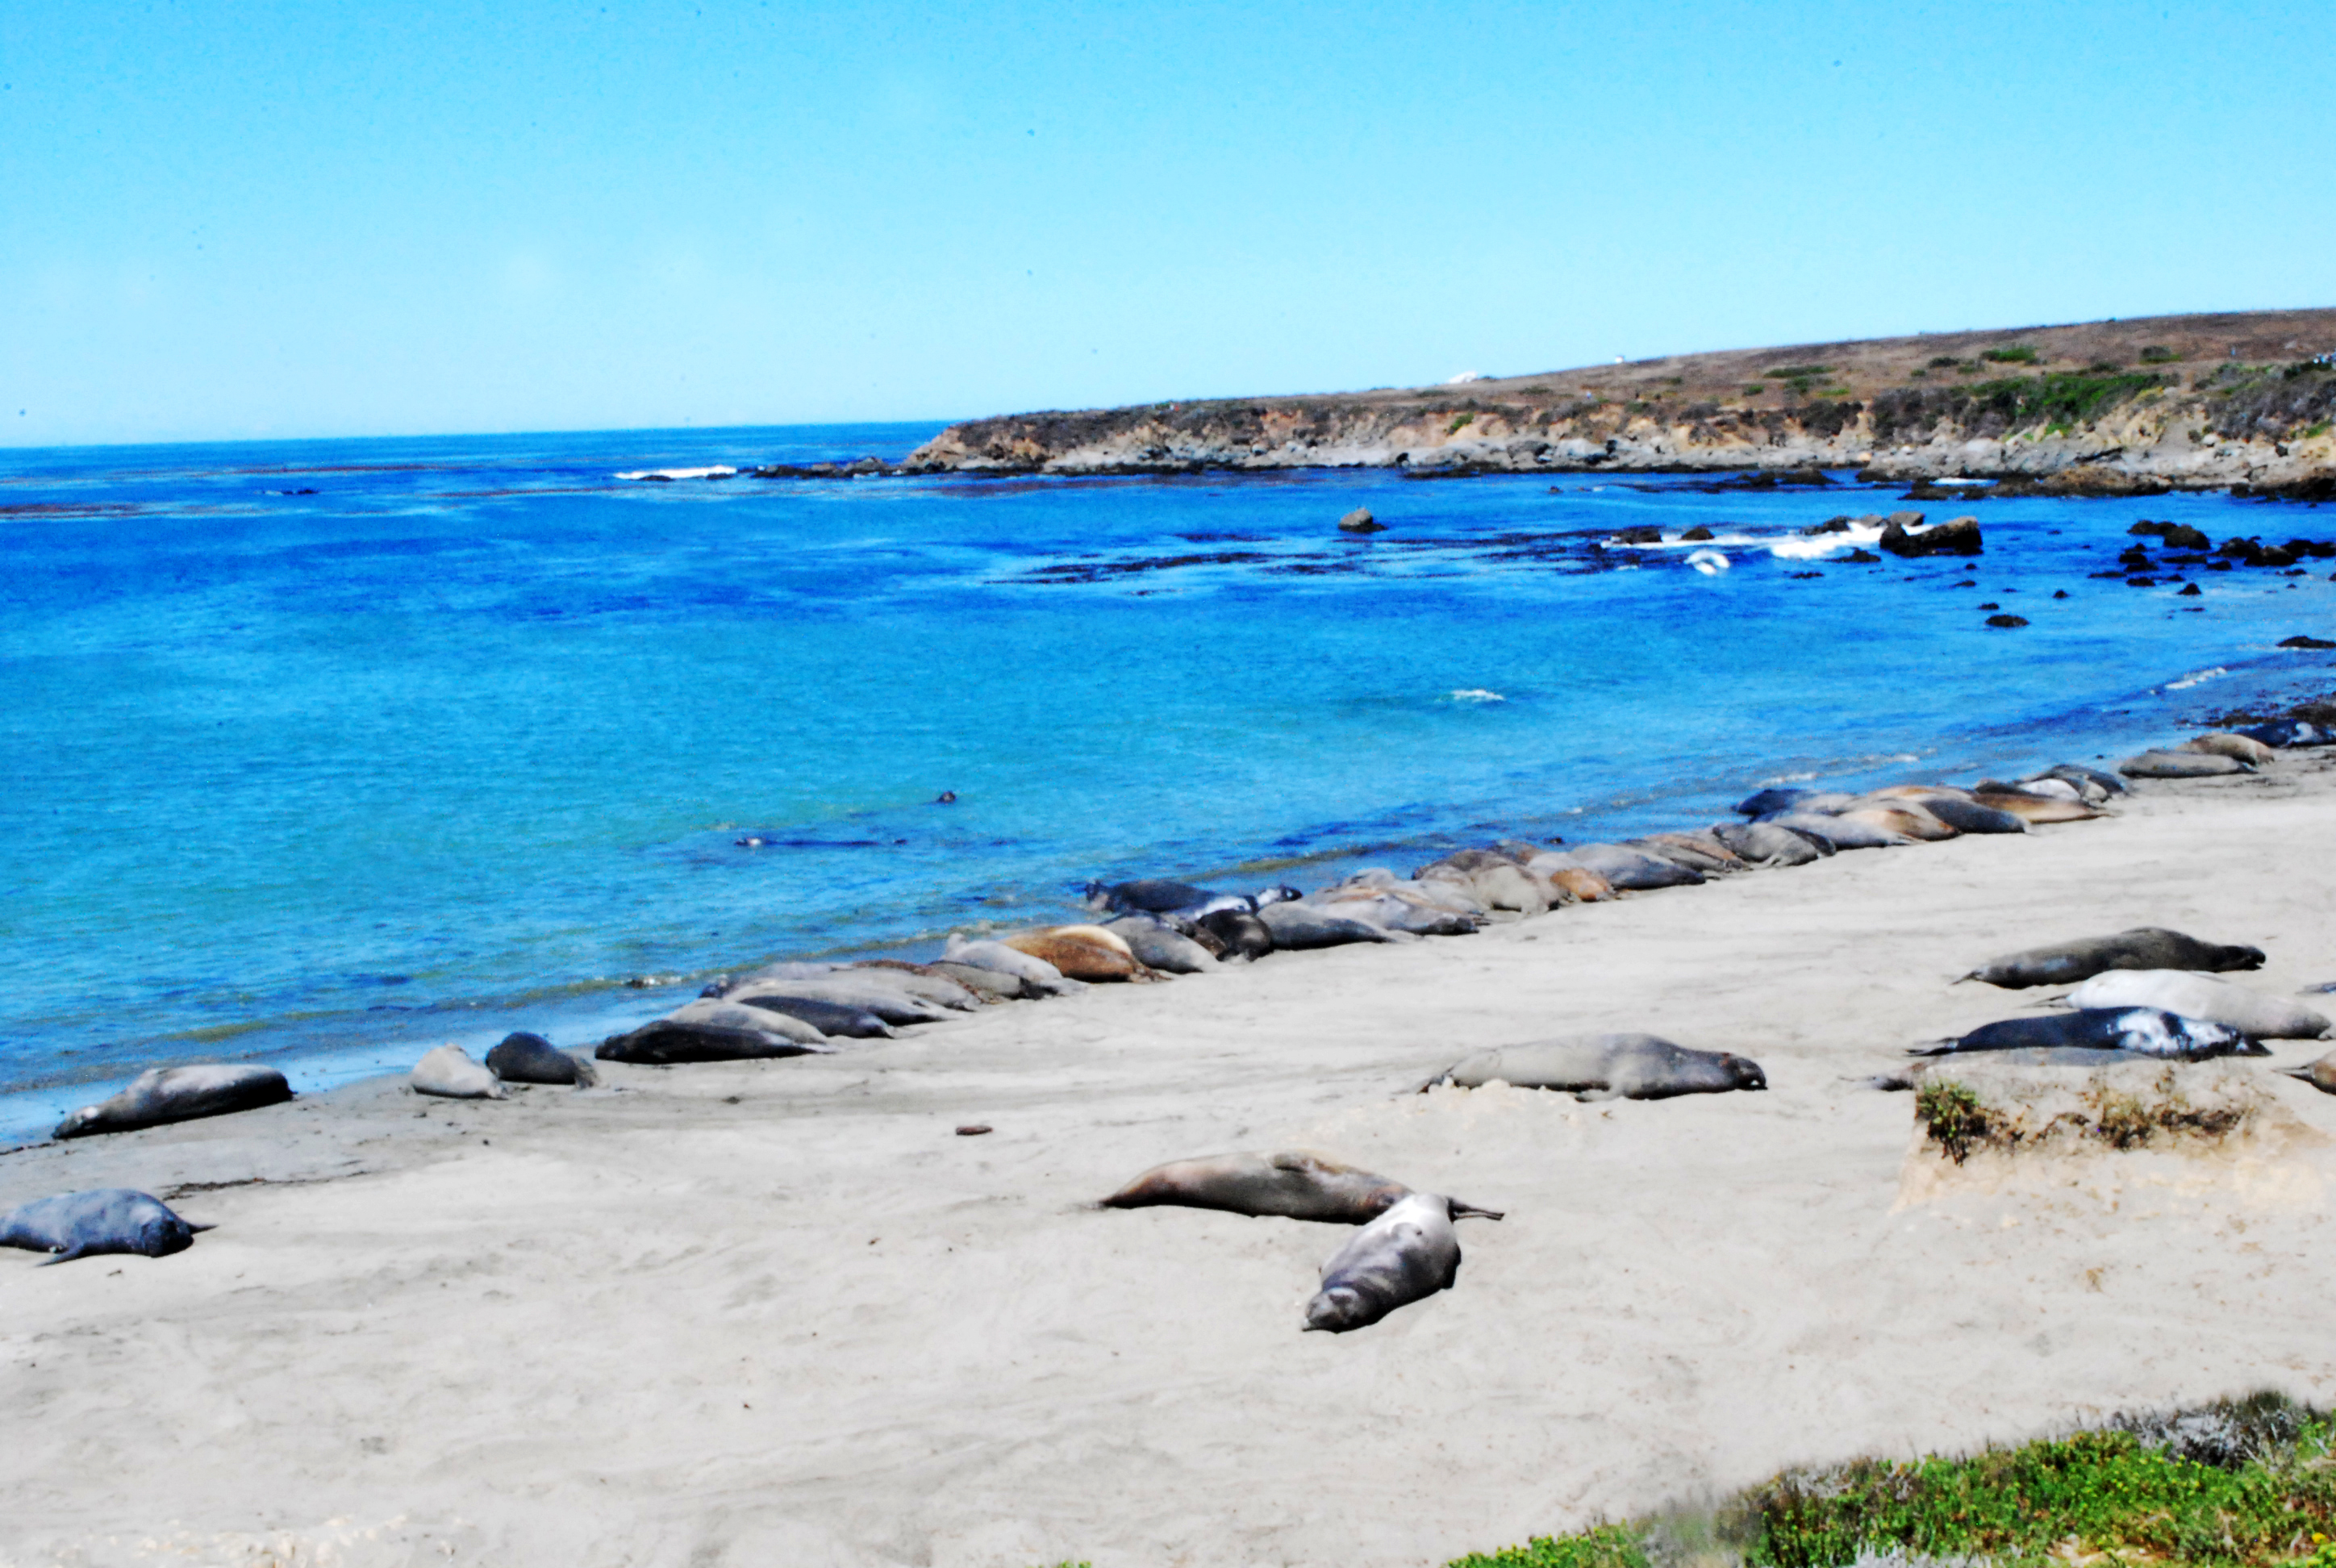 Highway 1 seals